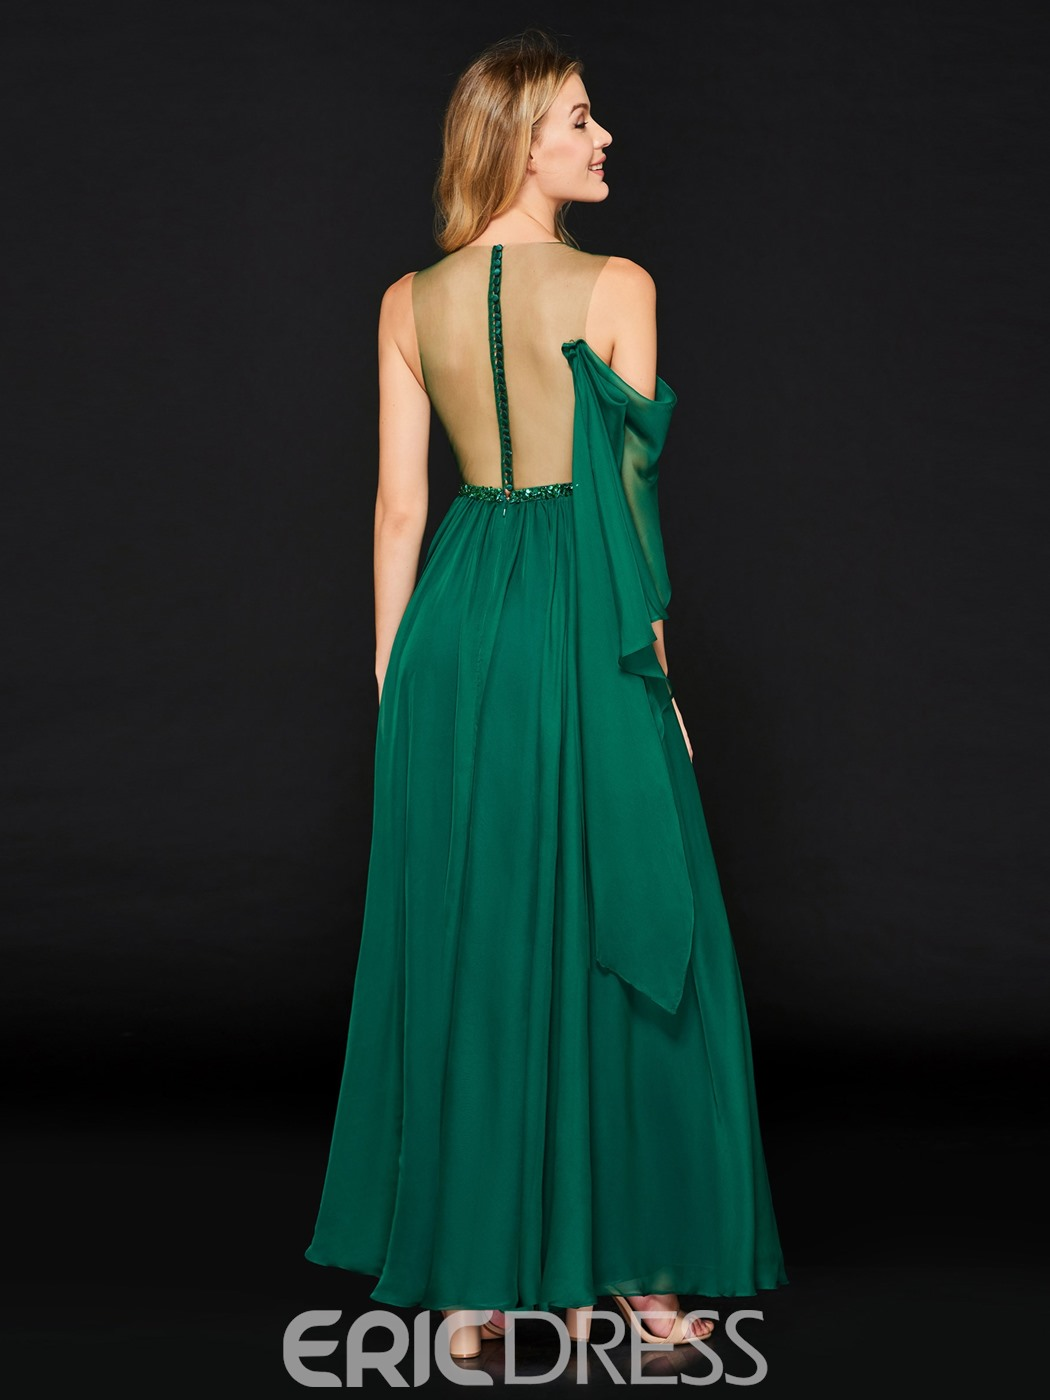 Ericdress A Line Split-Front Long Prom Dress With Beadings